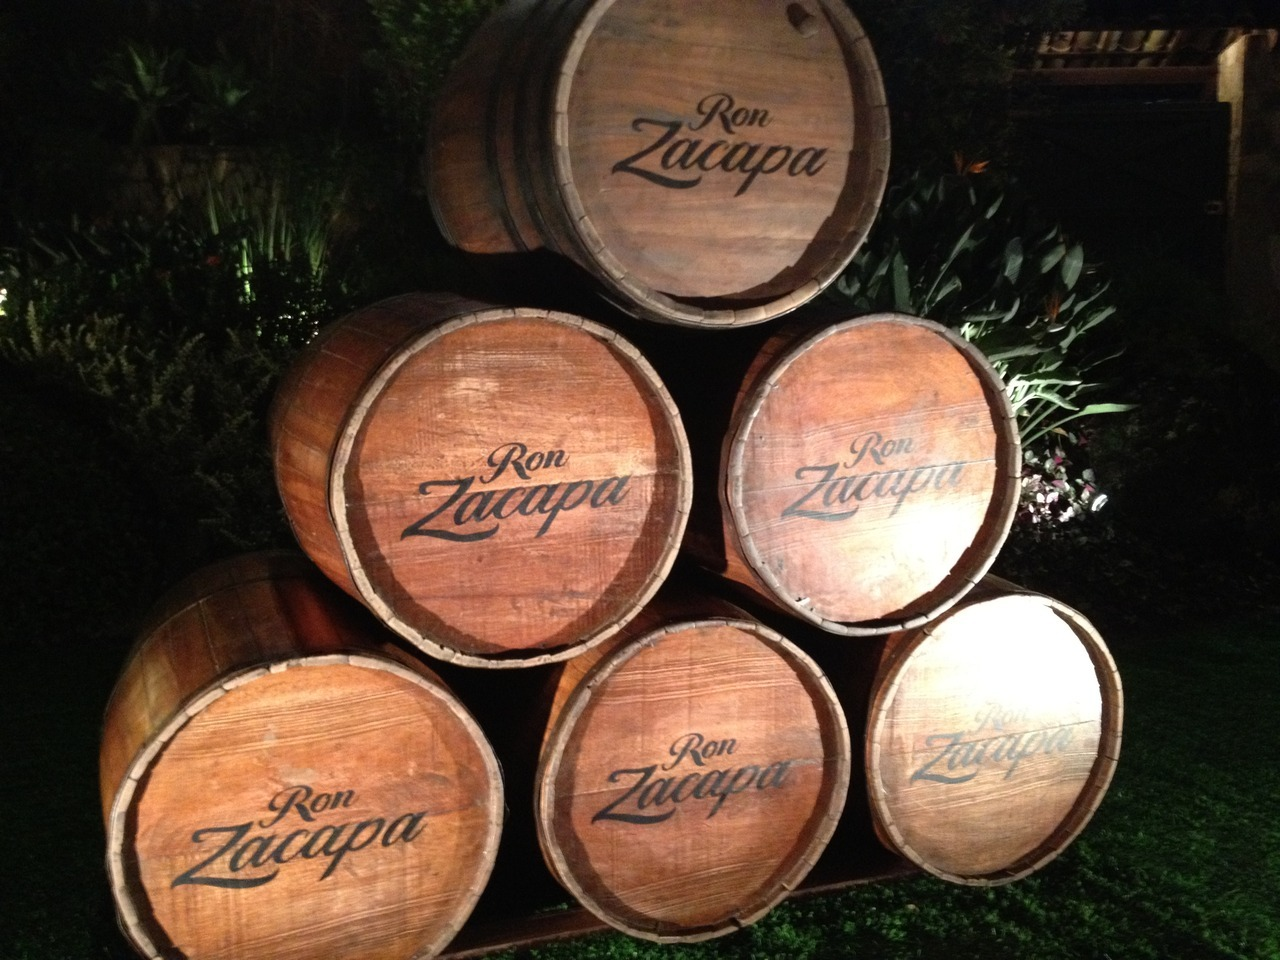 Zacapa Casks at the World Class 2012 Finals